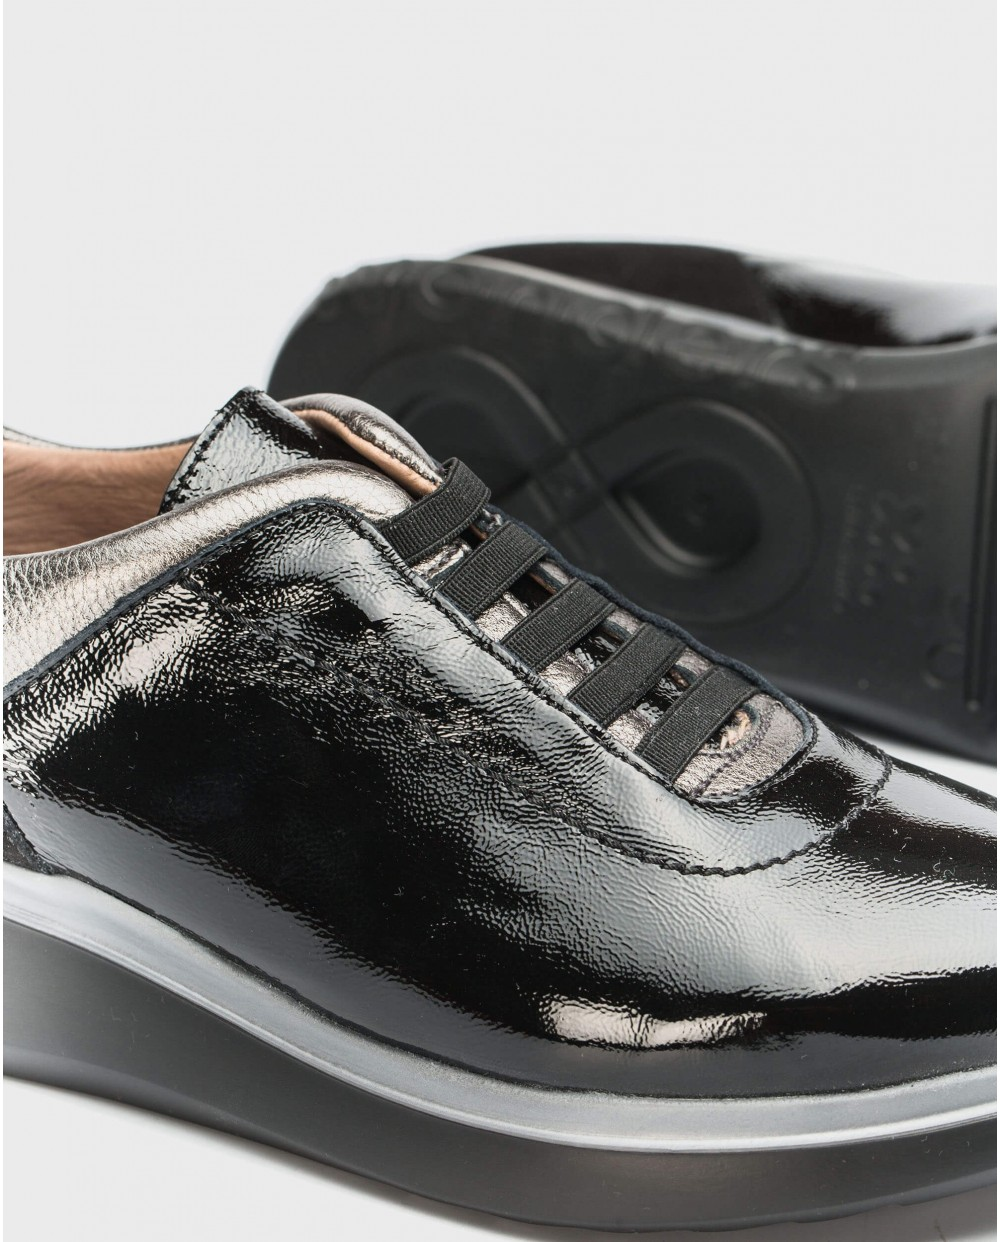 Wonders-Flat Shoes-Shoes with elastic